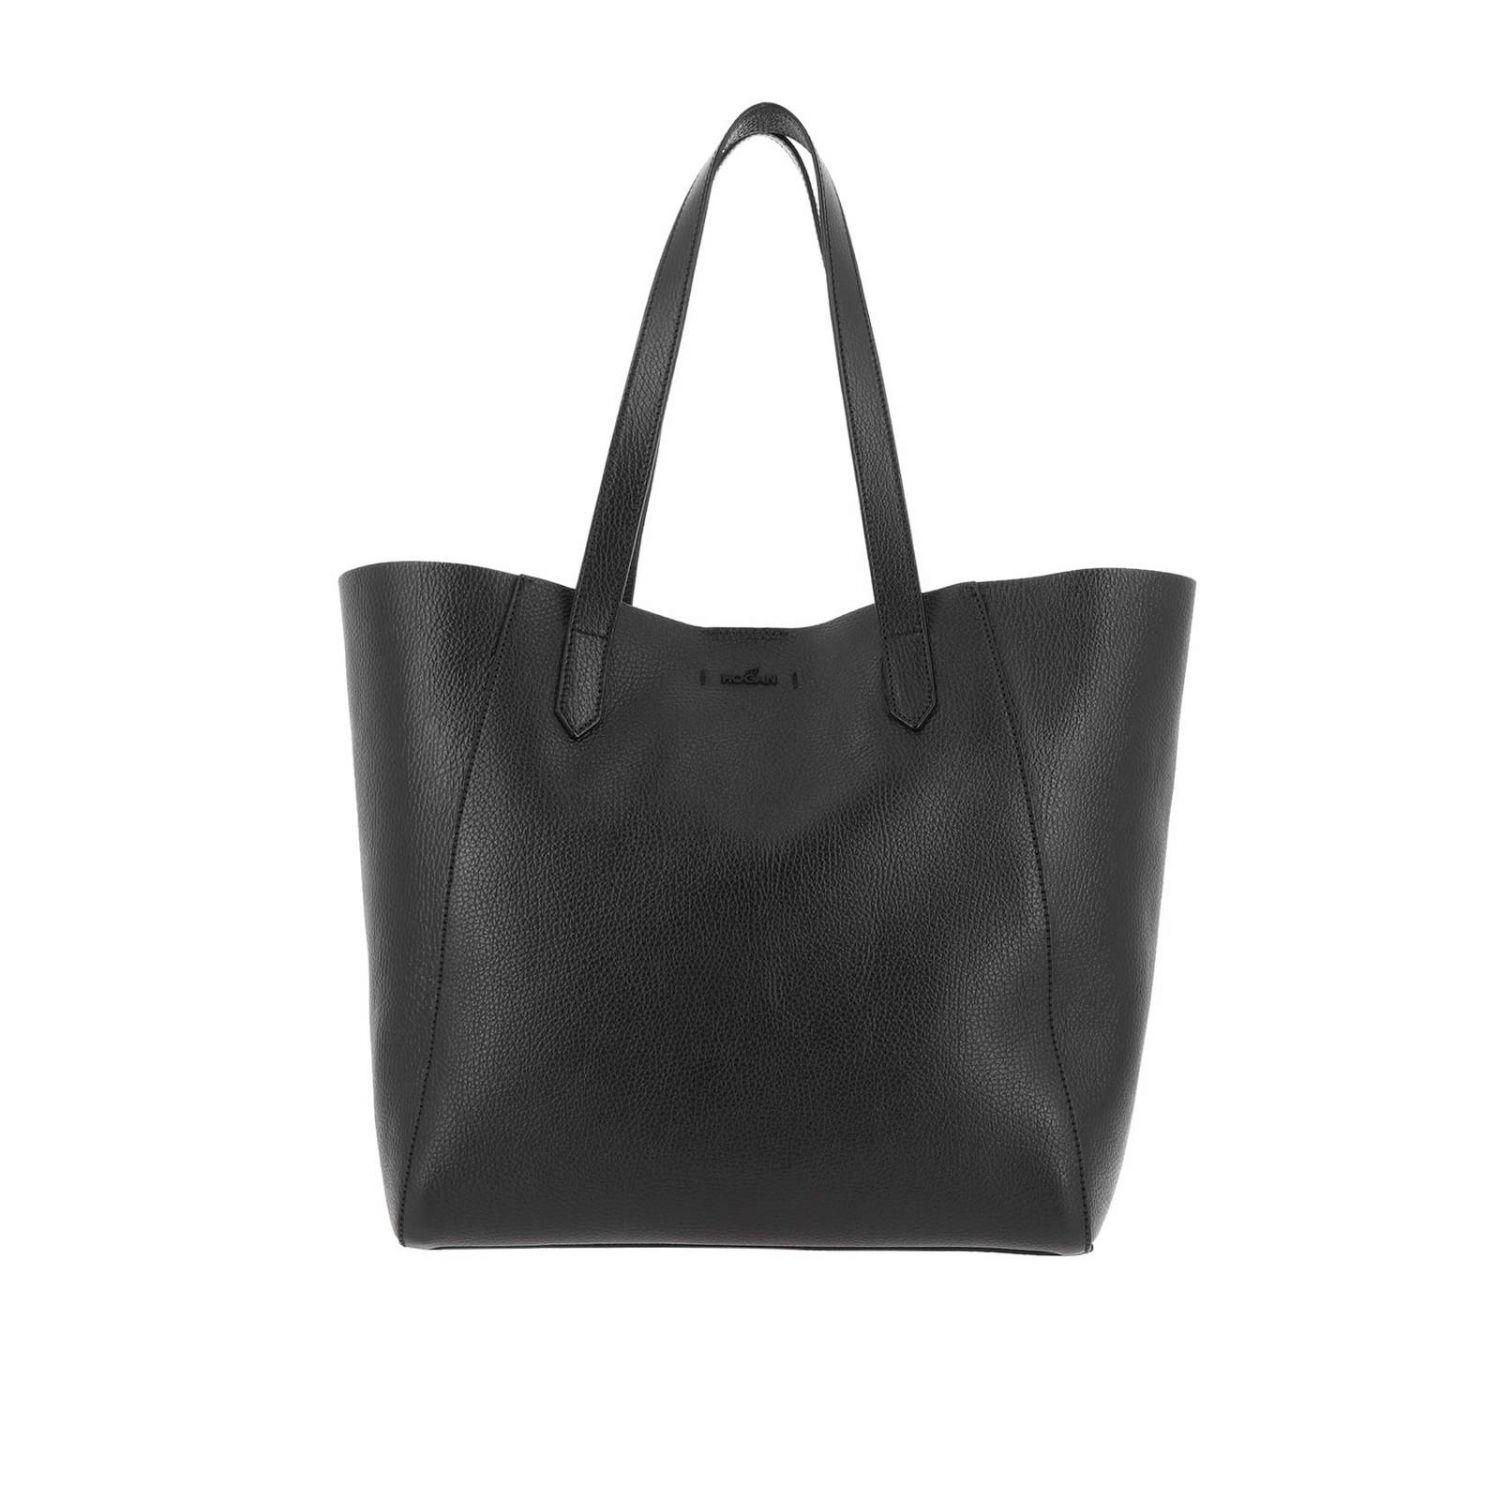 Hogan Tote Bags Women in Black - Lyst 0e58014322fdc